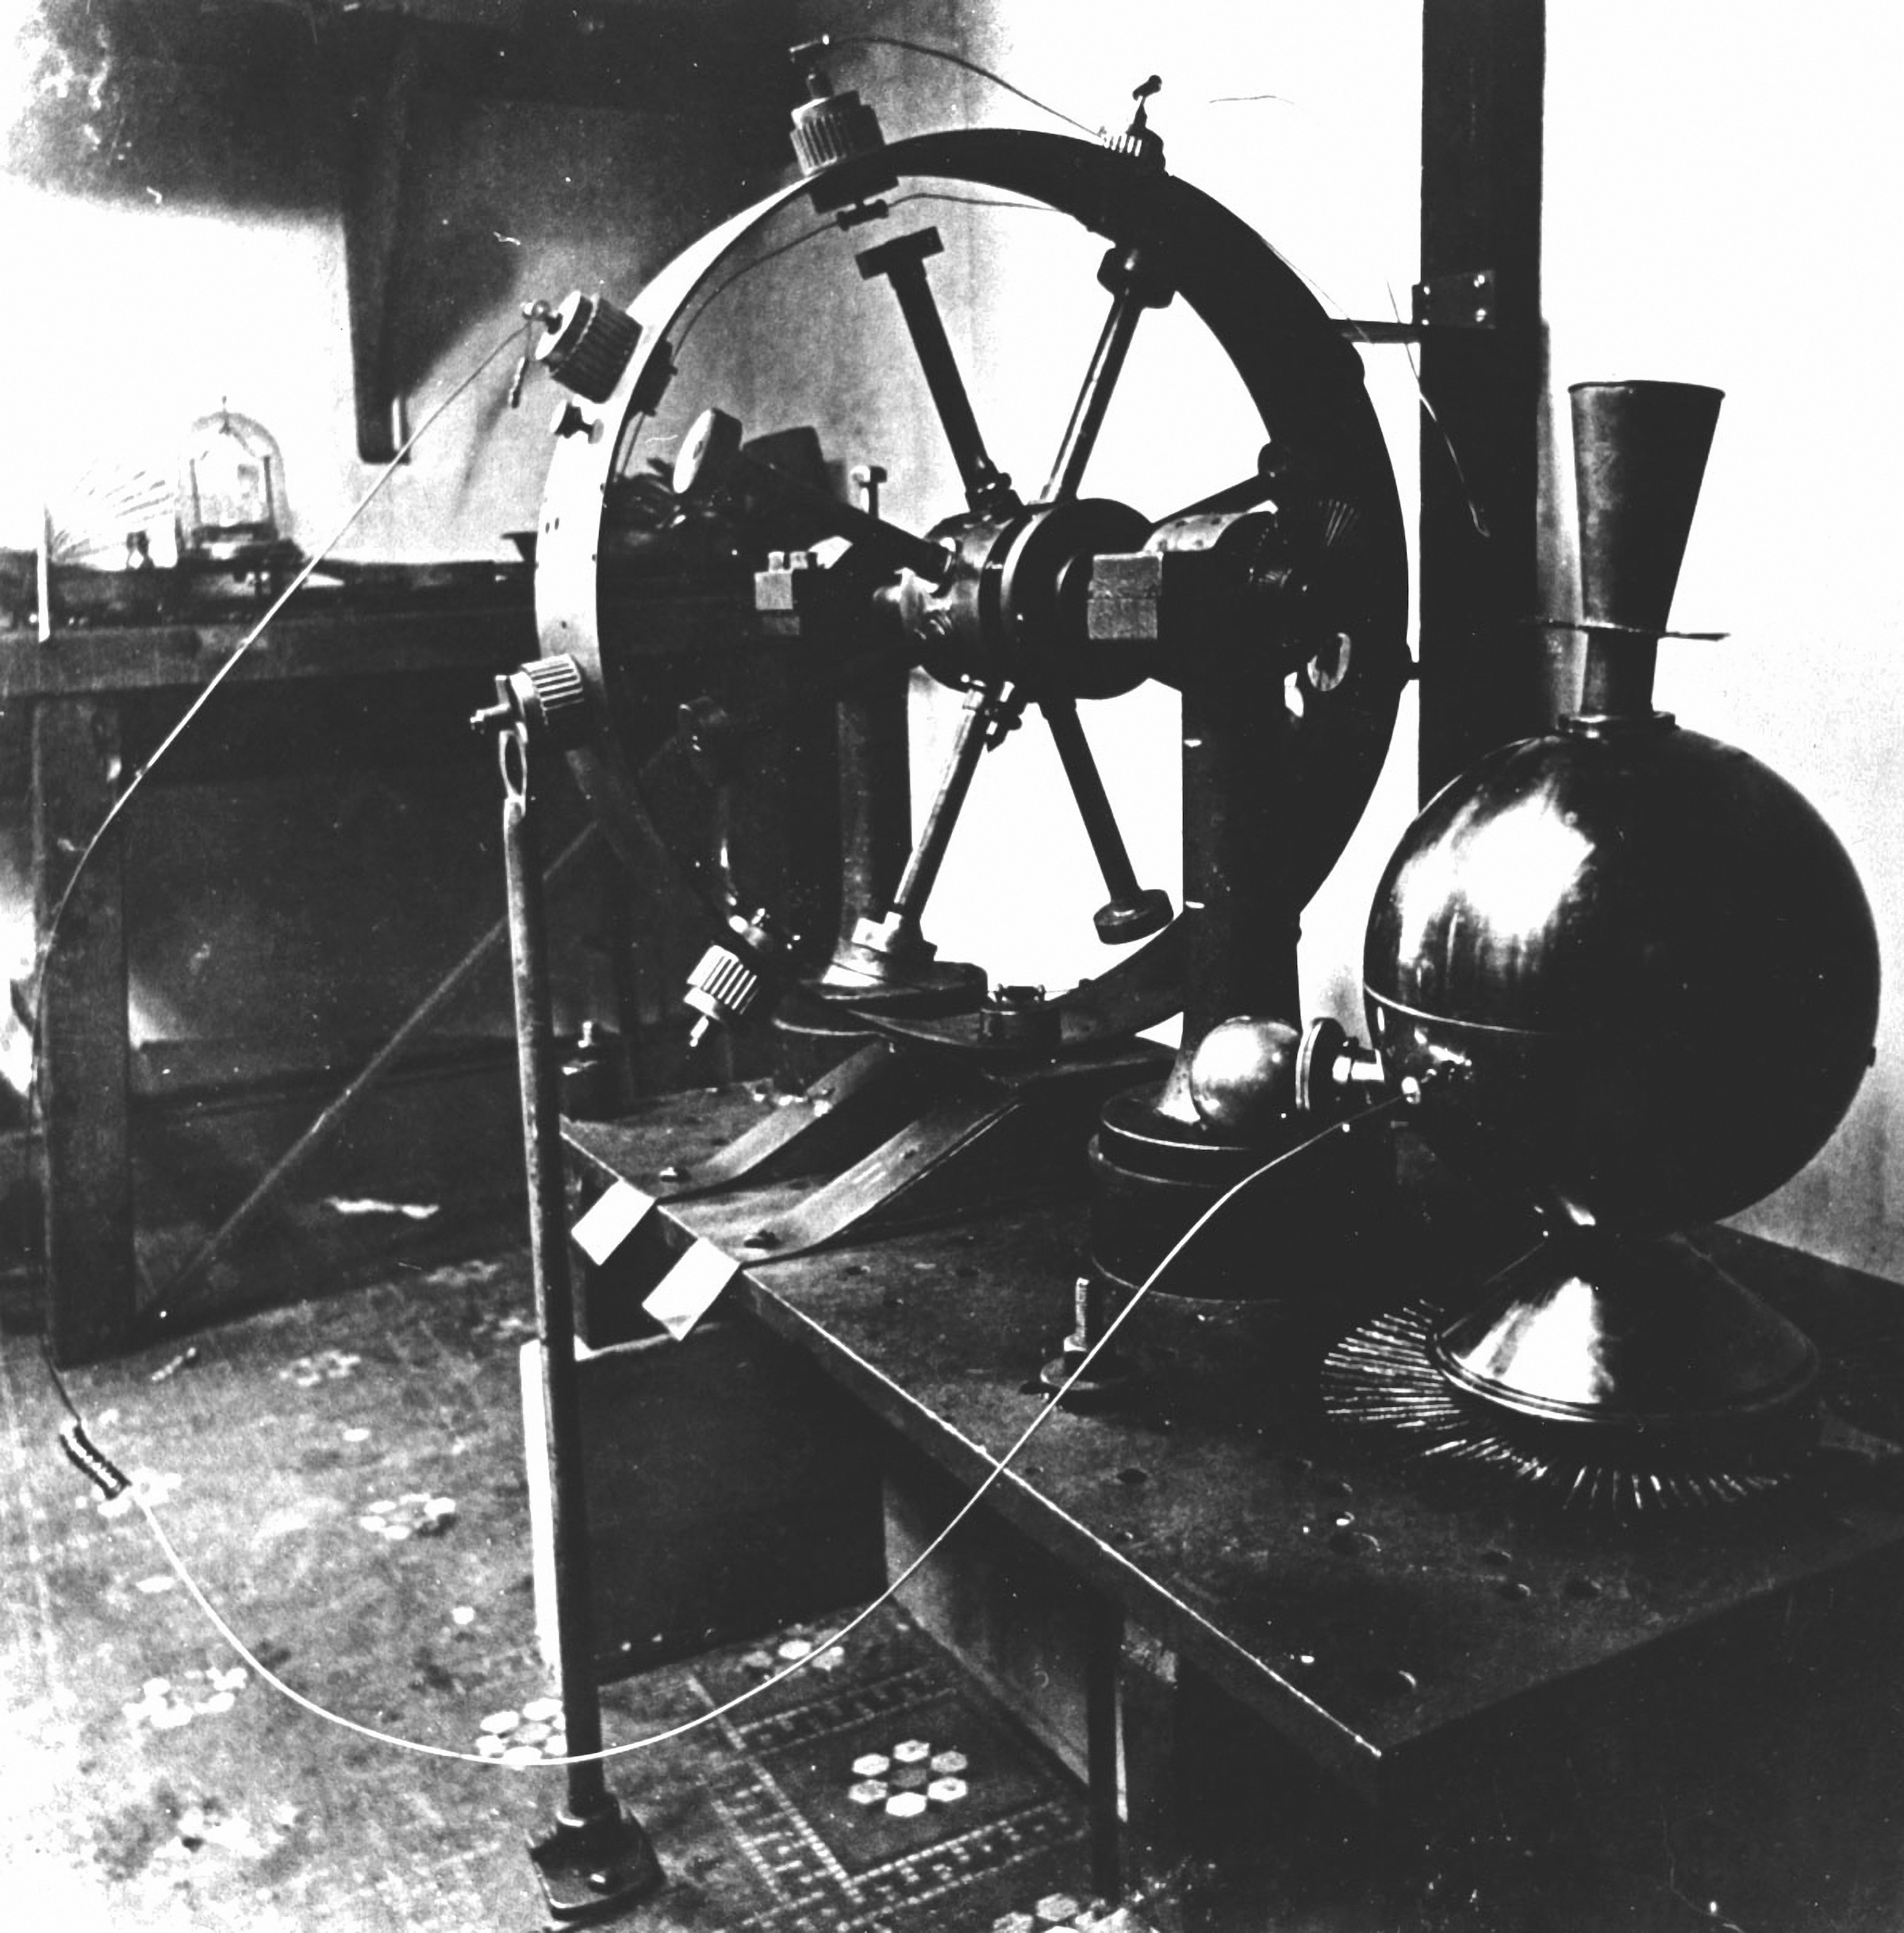 Wheel Motor and Accumulator